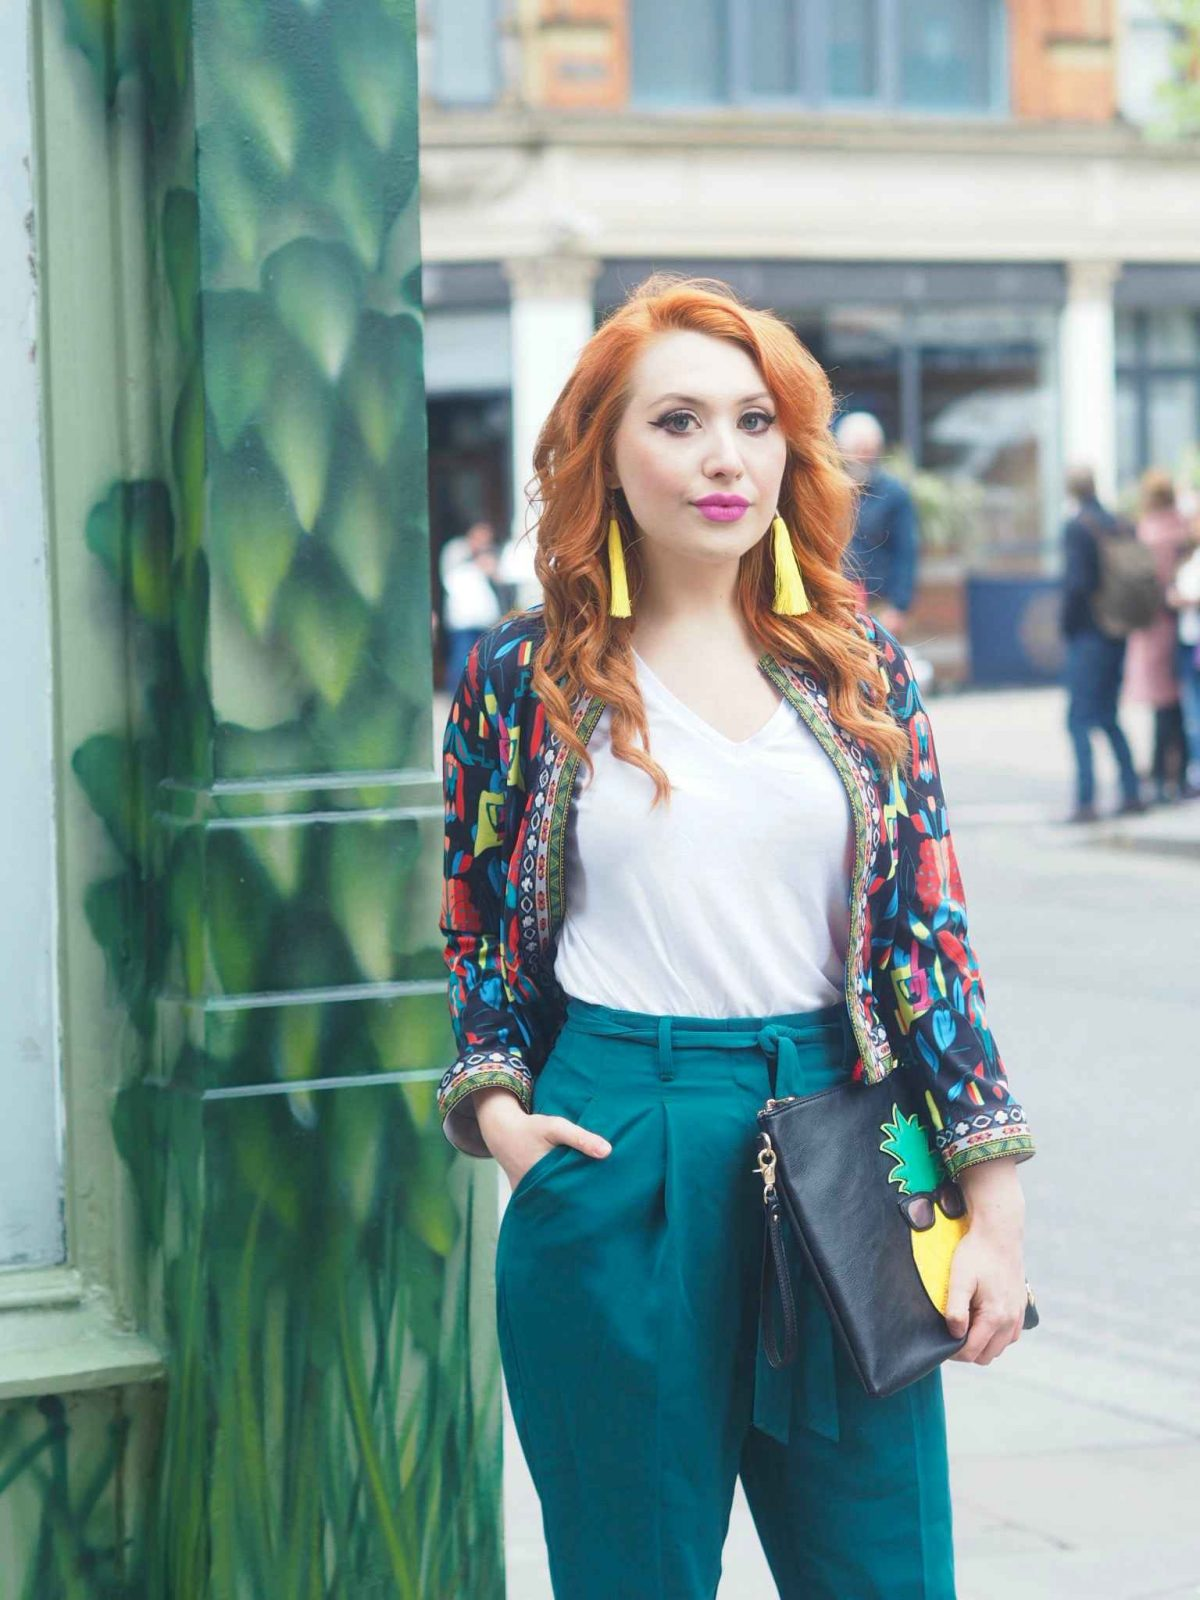 Blogger Twenty-Something City in Manchester wearing Shein colourful spring jacket